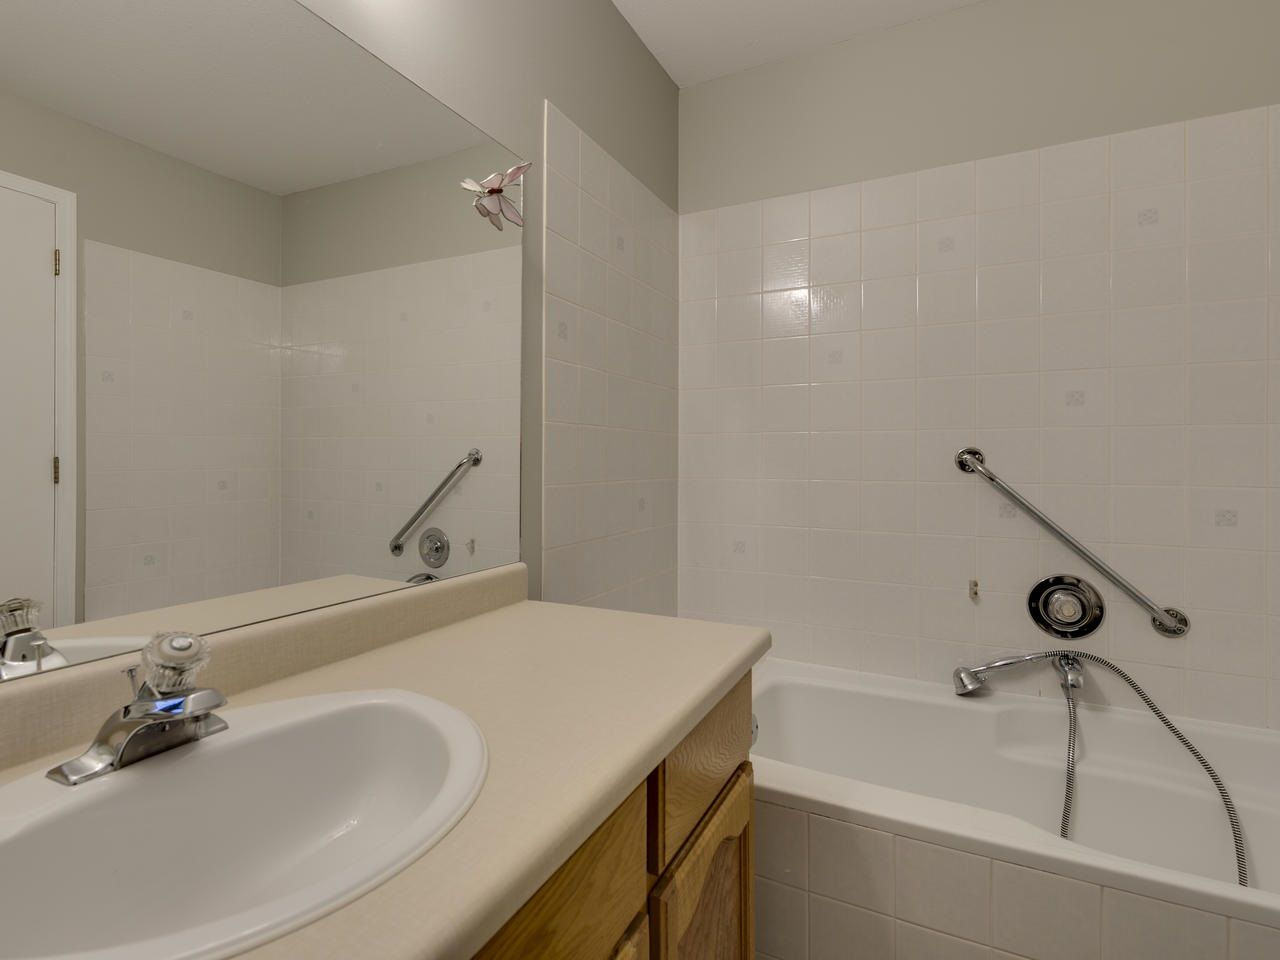 """Photo 34: Photos: 127 22555 116 Avenue in Maple Ridge: East Central Townhouse for sale in """"HILLSIDE"""" : MLS®# R2493046"""